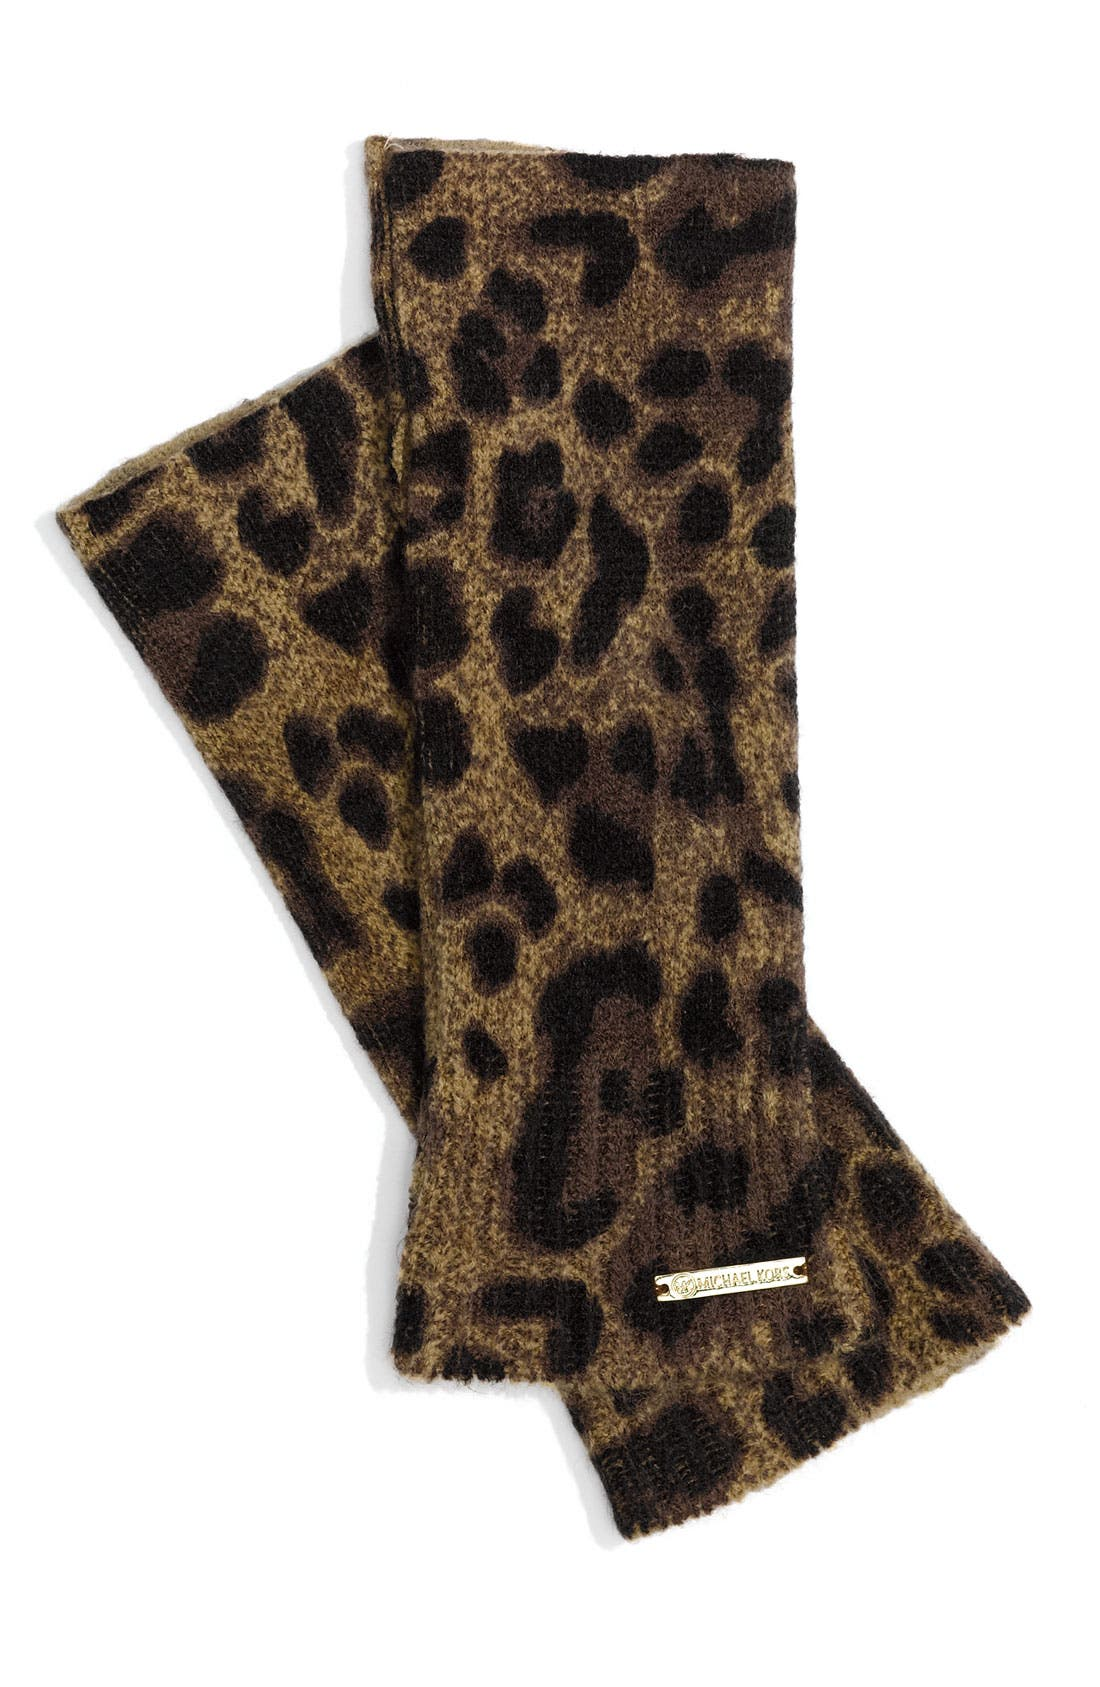 Leopard Print Hand Warmers,                             Main thumbnail 1, color,                             200